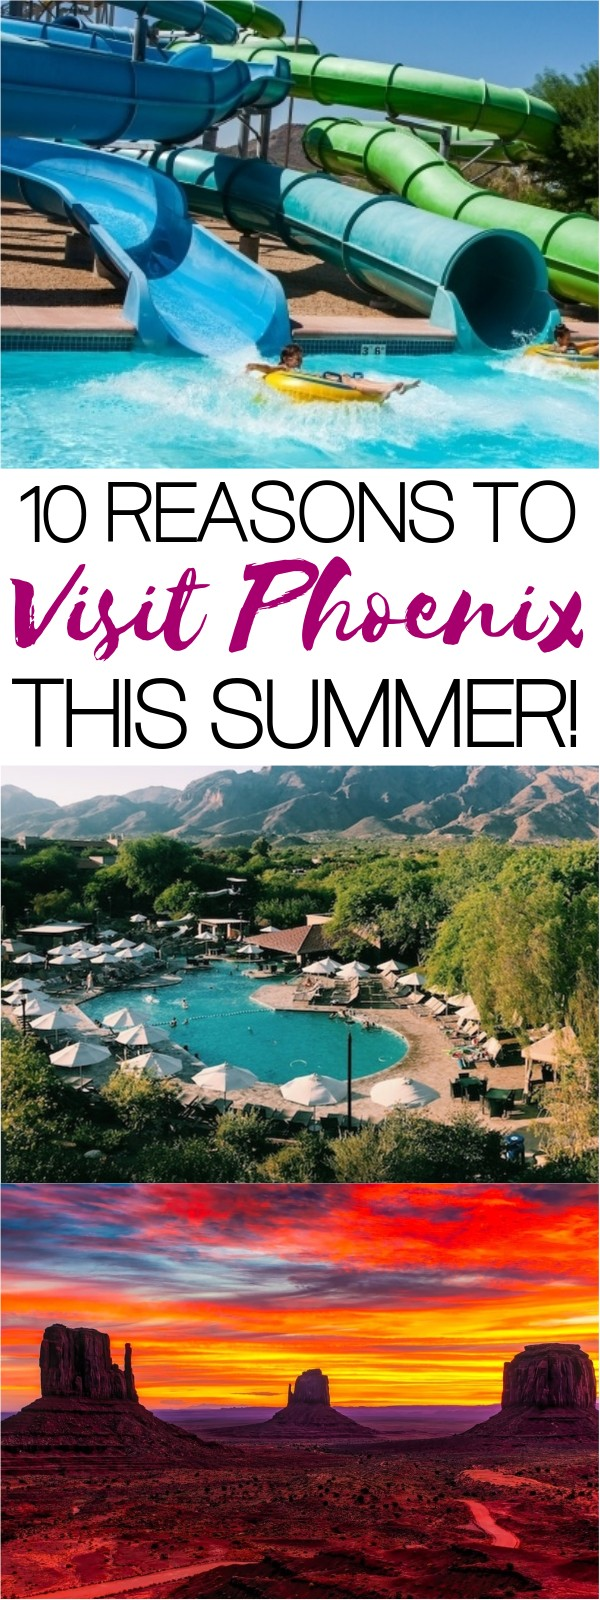 Travel To Phoenix In The Summer YES Here Are 10 Reasons To Visit Arizona When Its Hot - things to do in Phoenix in the summer | Phoenix summer weather | summer activities in Arizona | honeyandlime.co